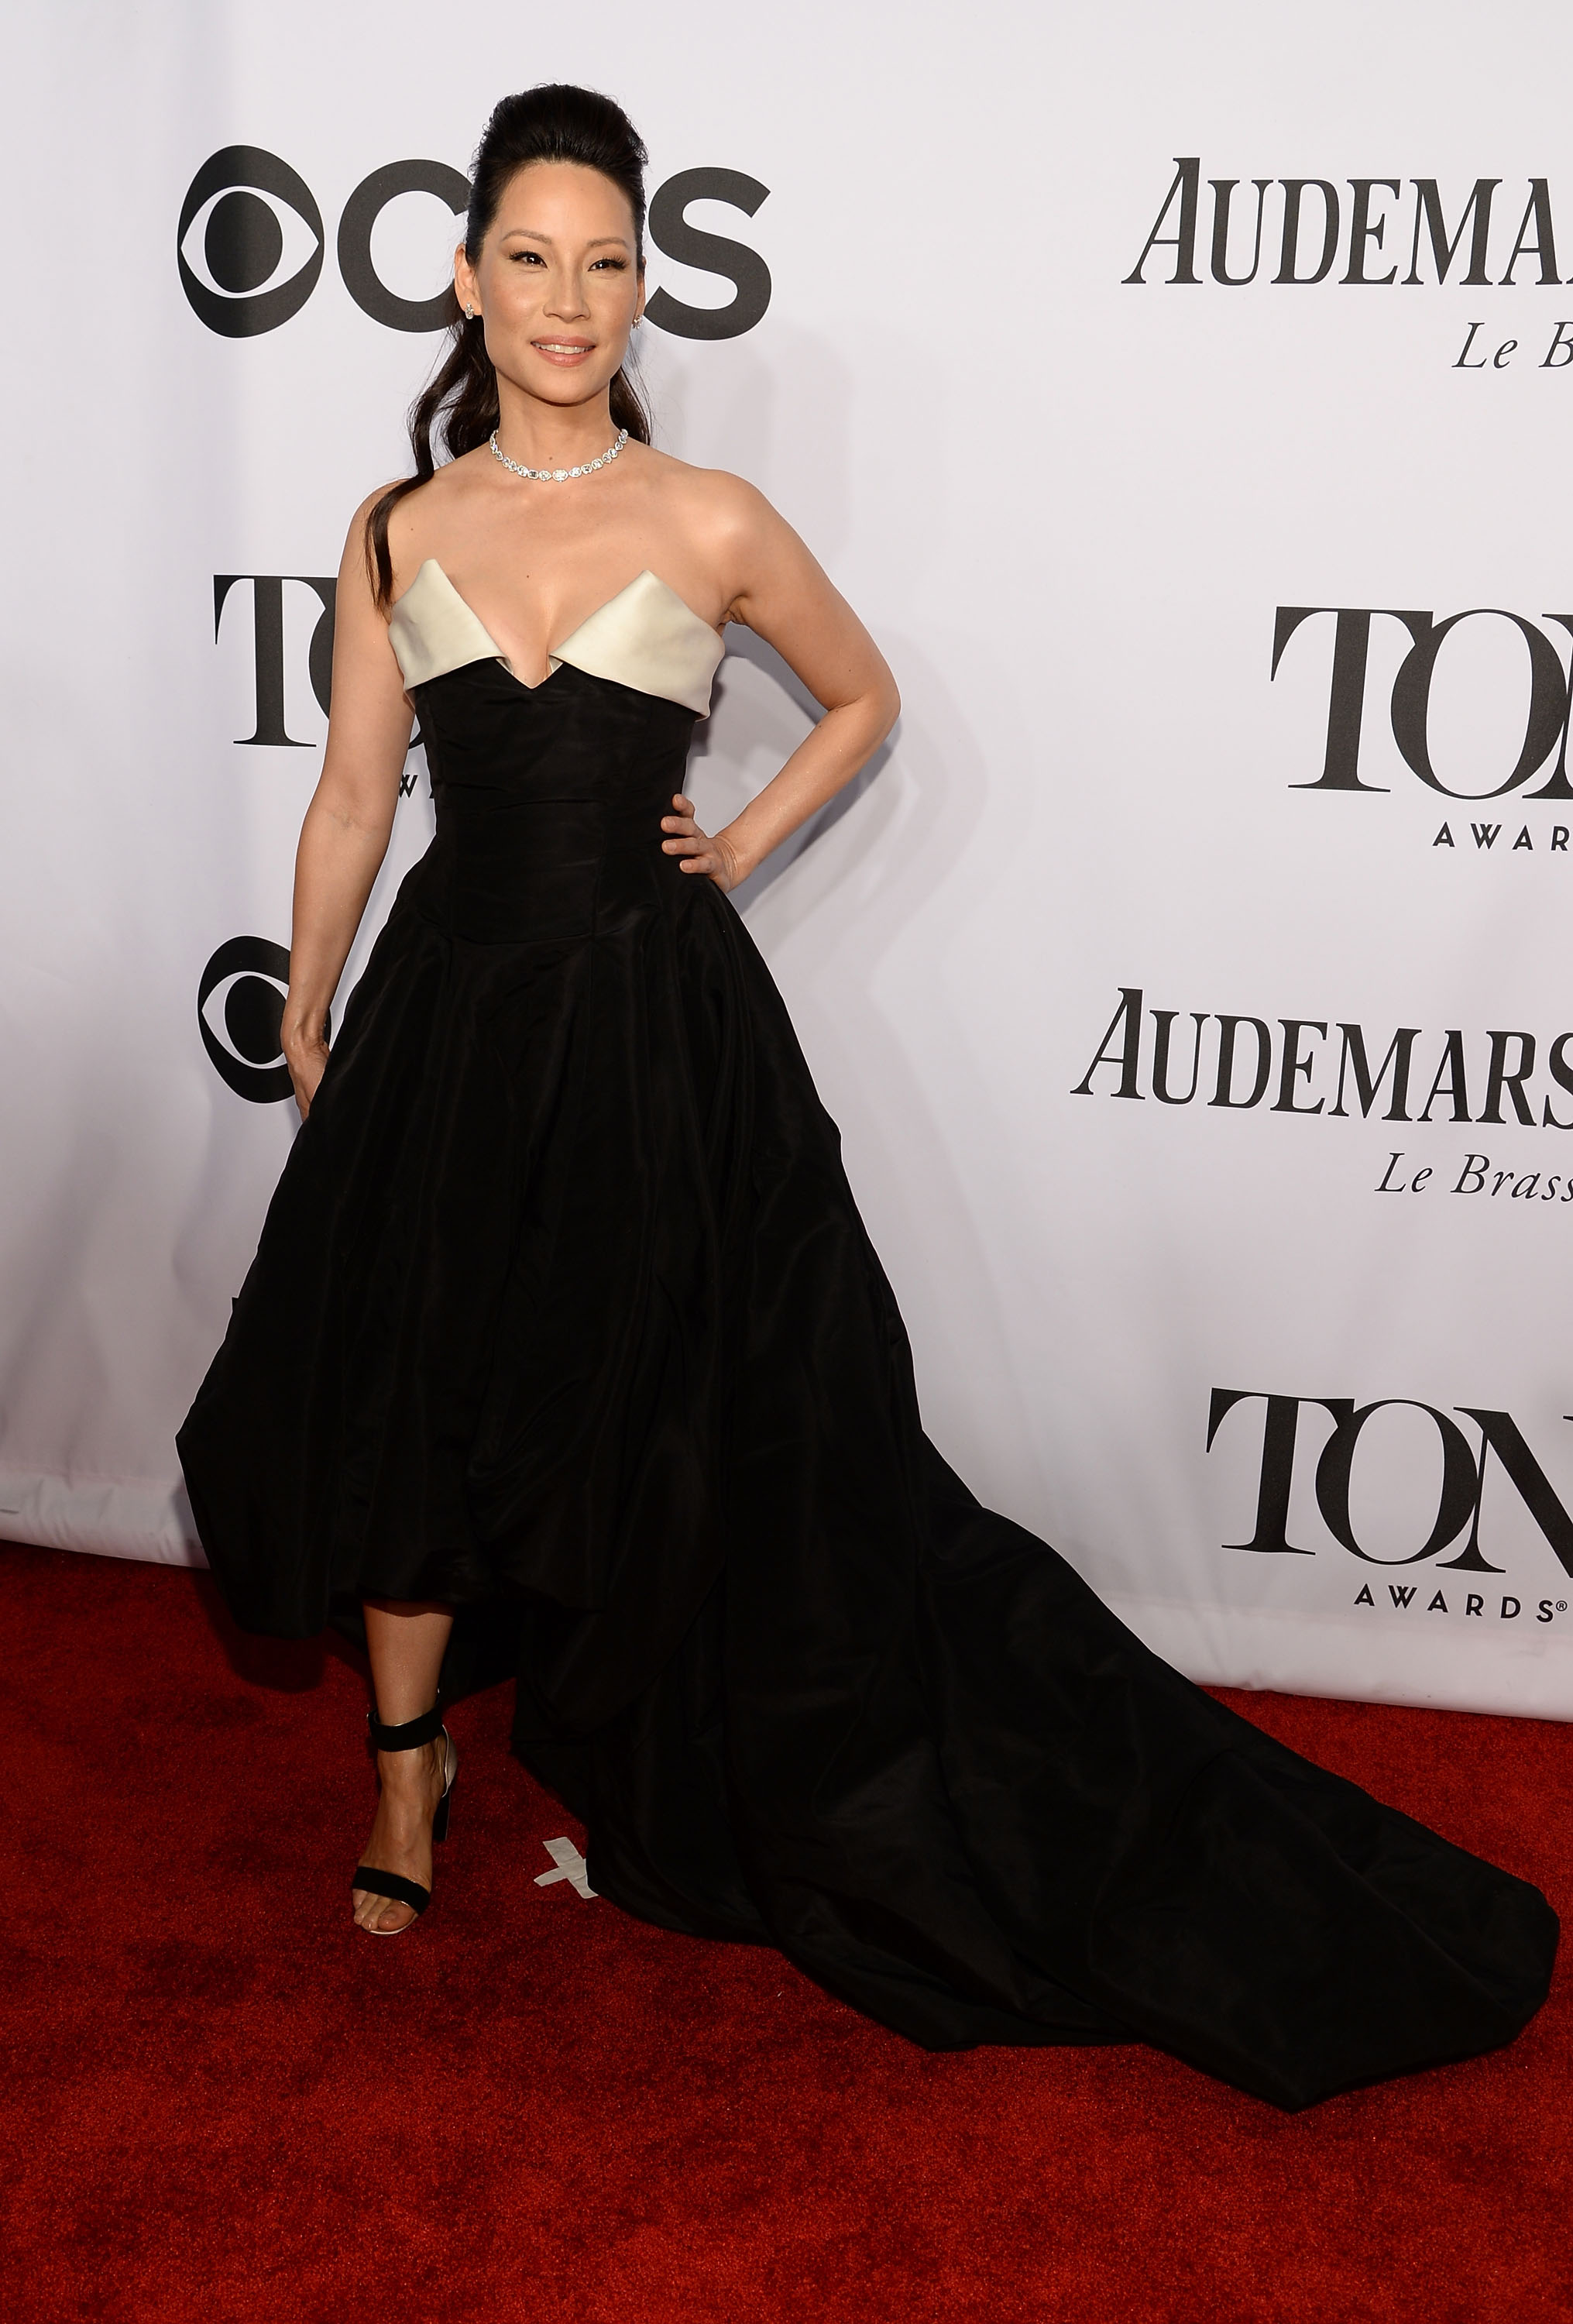 Actress Lucy Liu attends the 68th Annual Tony Awards at Radio City Music Hall on June 8, 2014 in New York City.